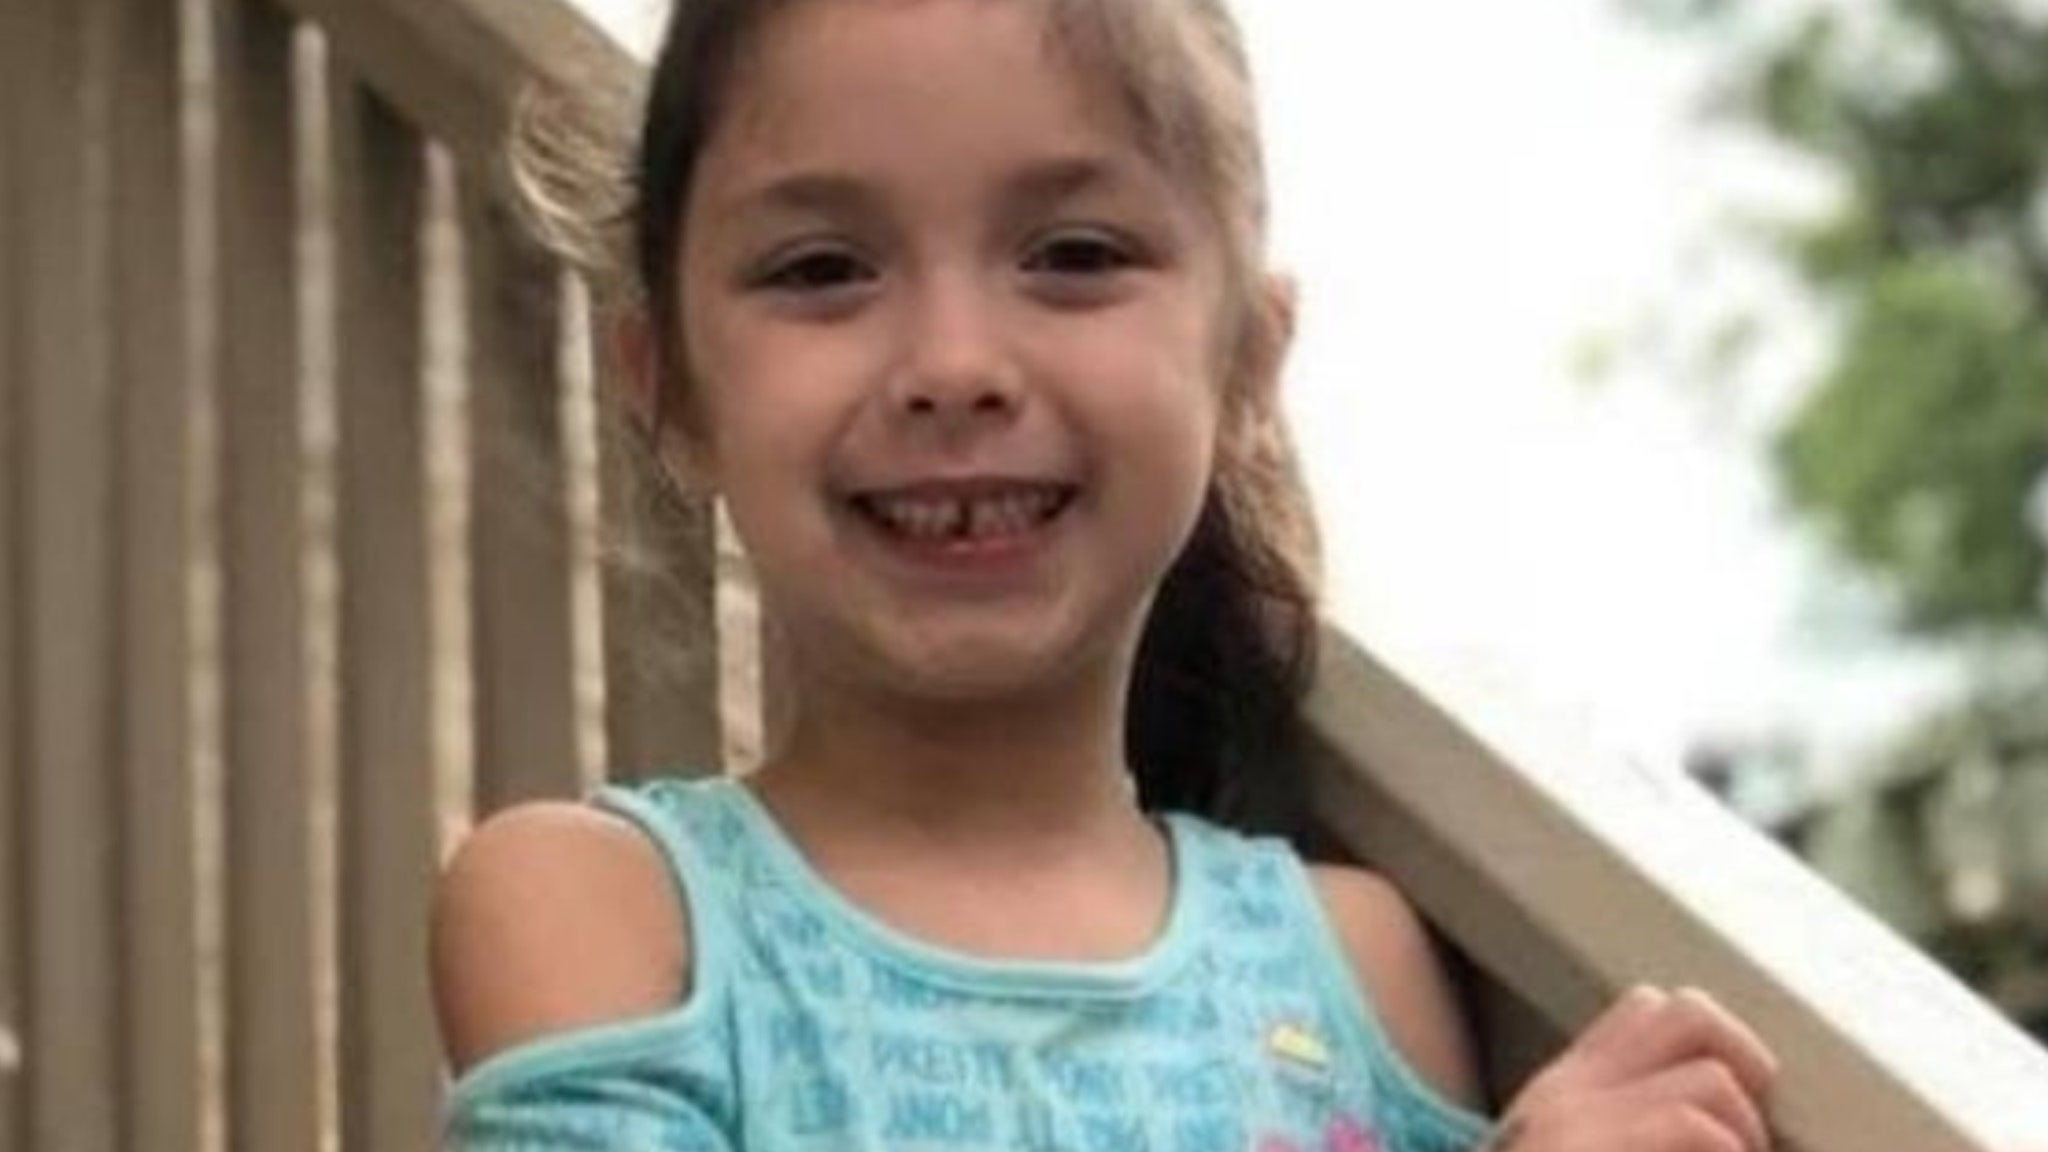 Nine-Year-Old Texas Girl With Mild Symptoms Dies in Her Sleep Three Days After Testing Positive for Covid - TooFab